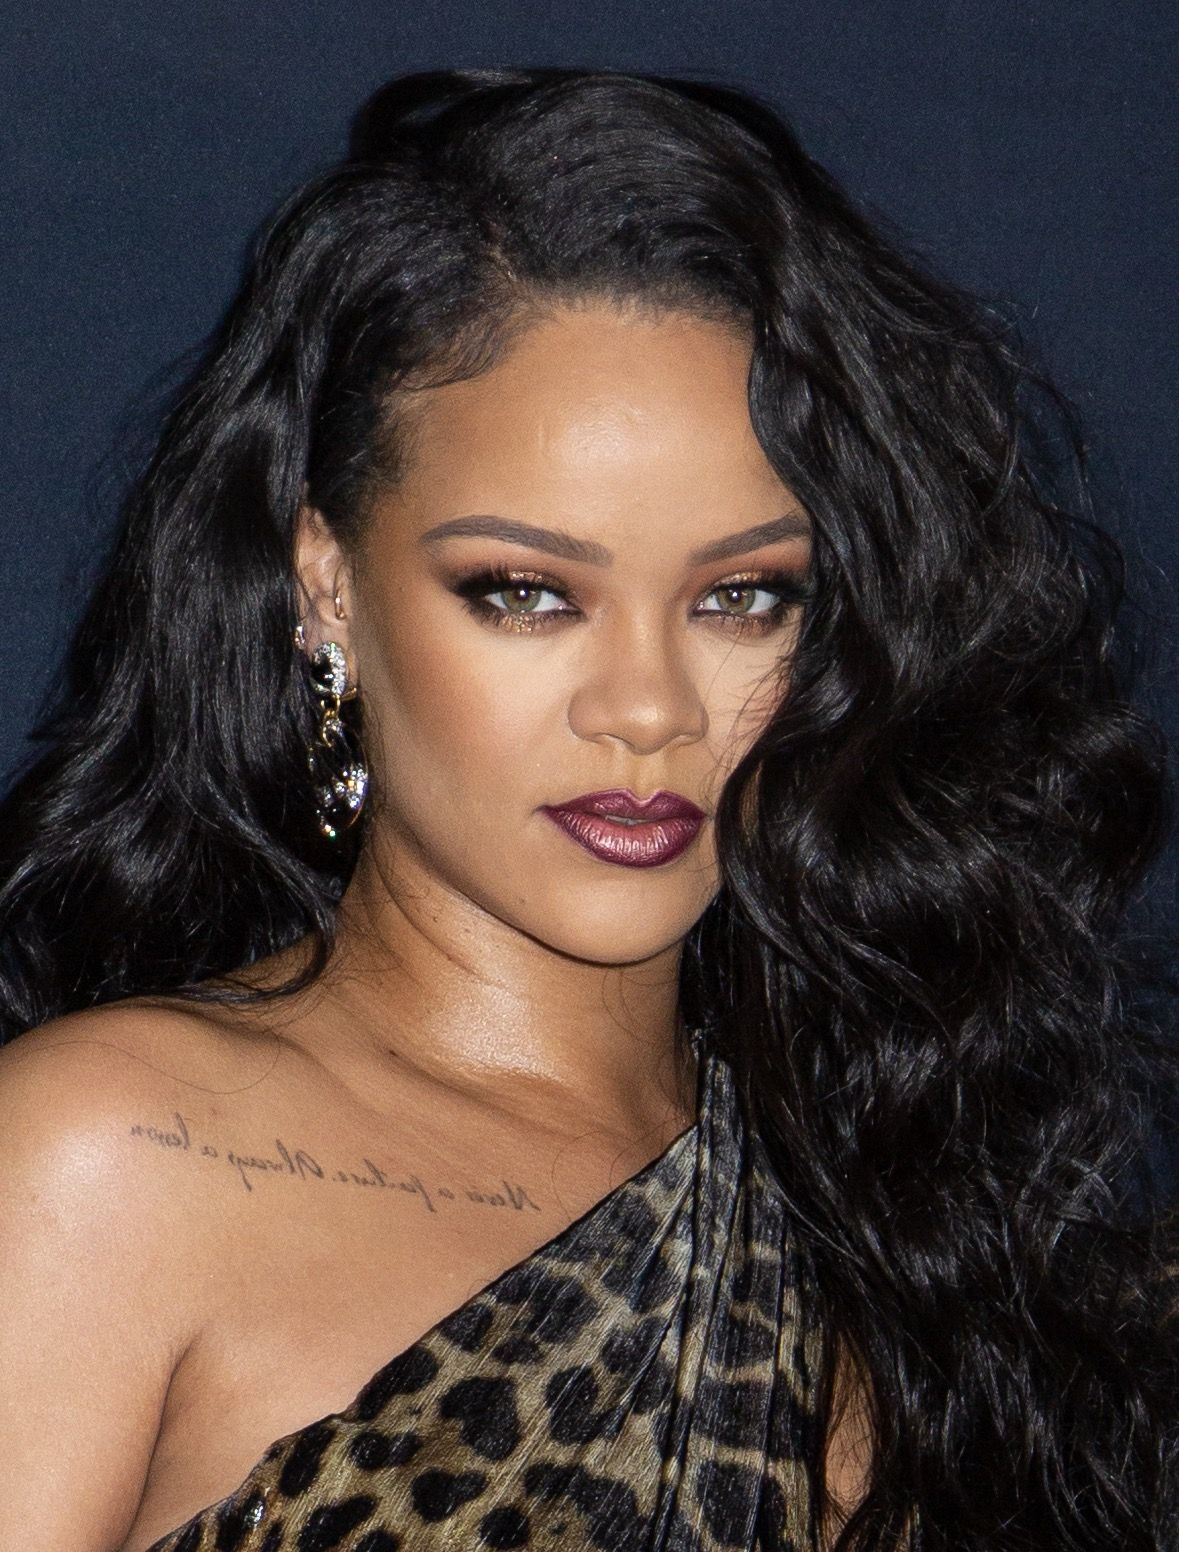 Rihanna Teases That Her New Music Will Be Well Worth the Wait